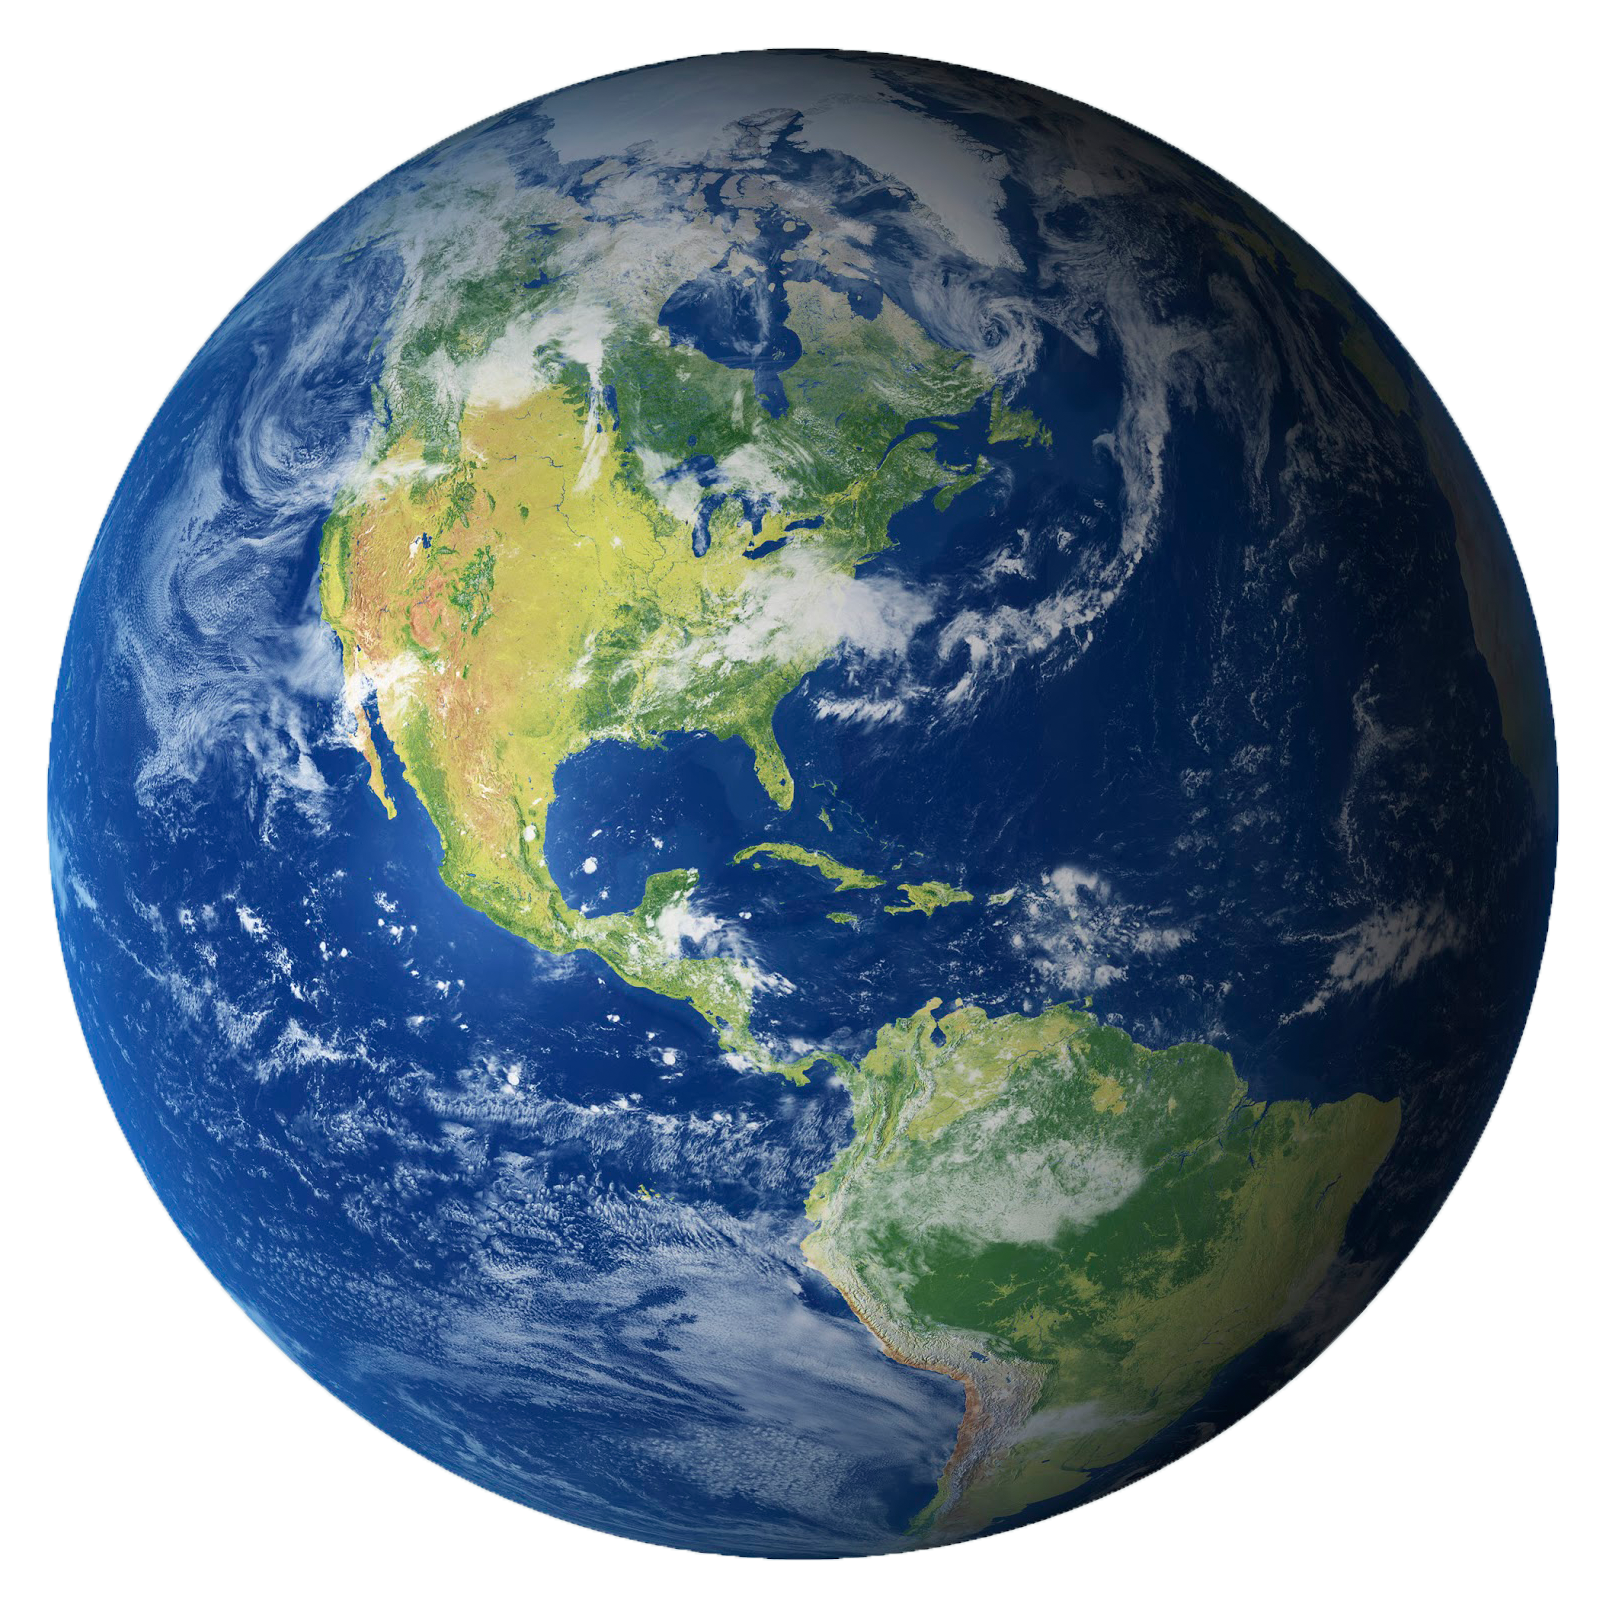 Earth png transparent. Image purepng free cc